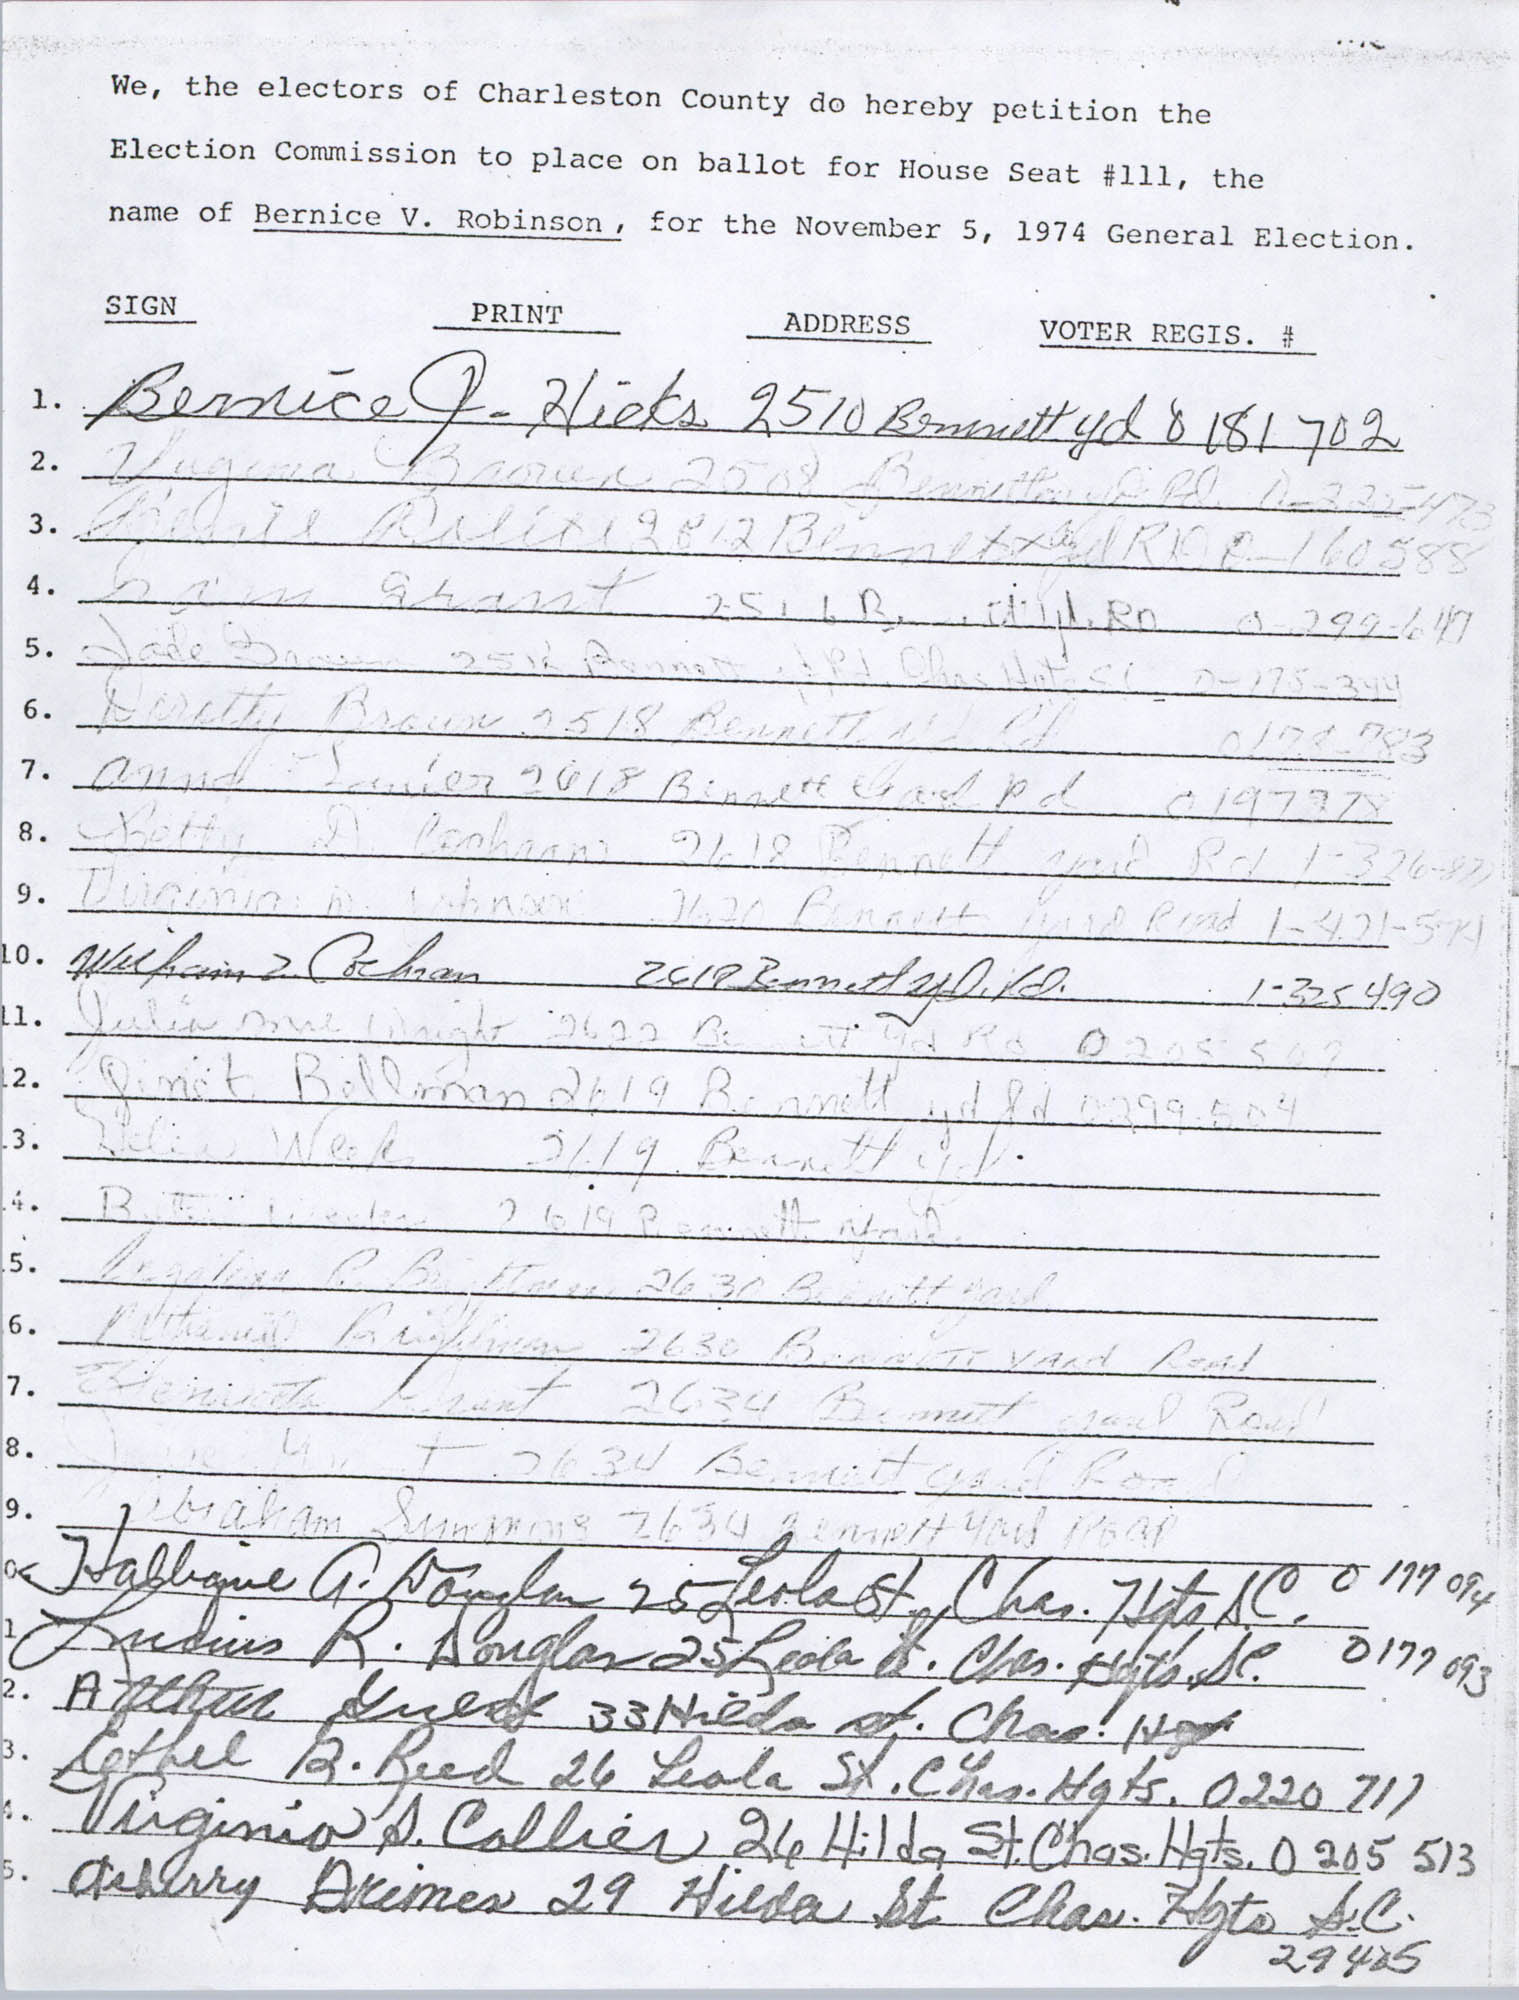 Bernice Robinson Petition for South Carolina House of Representatives, Page 42